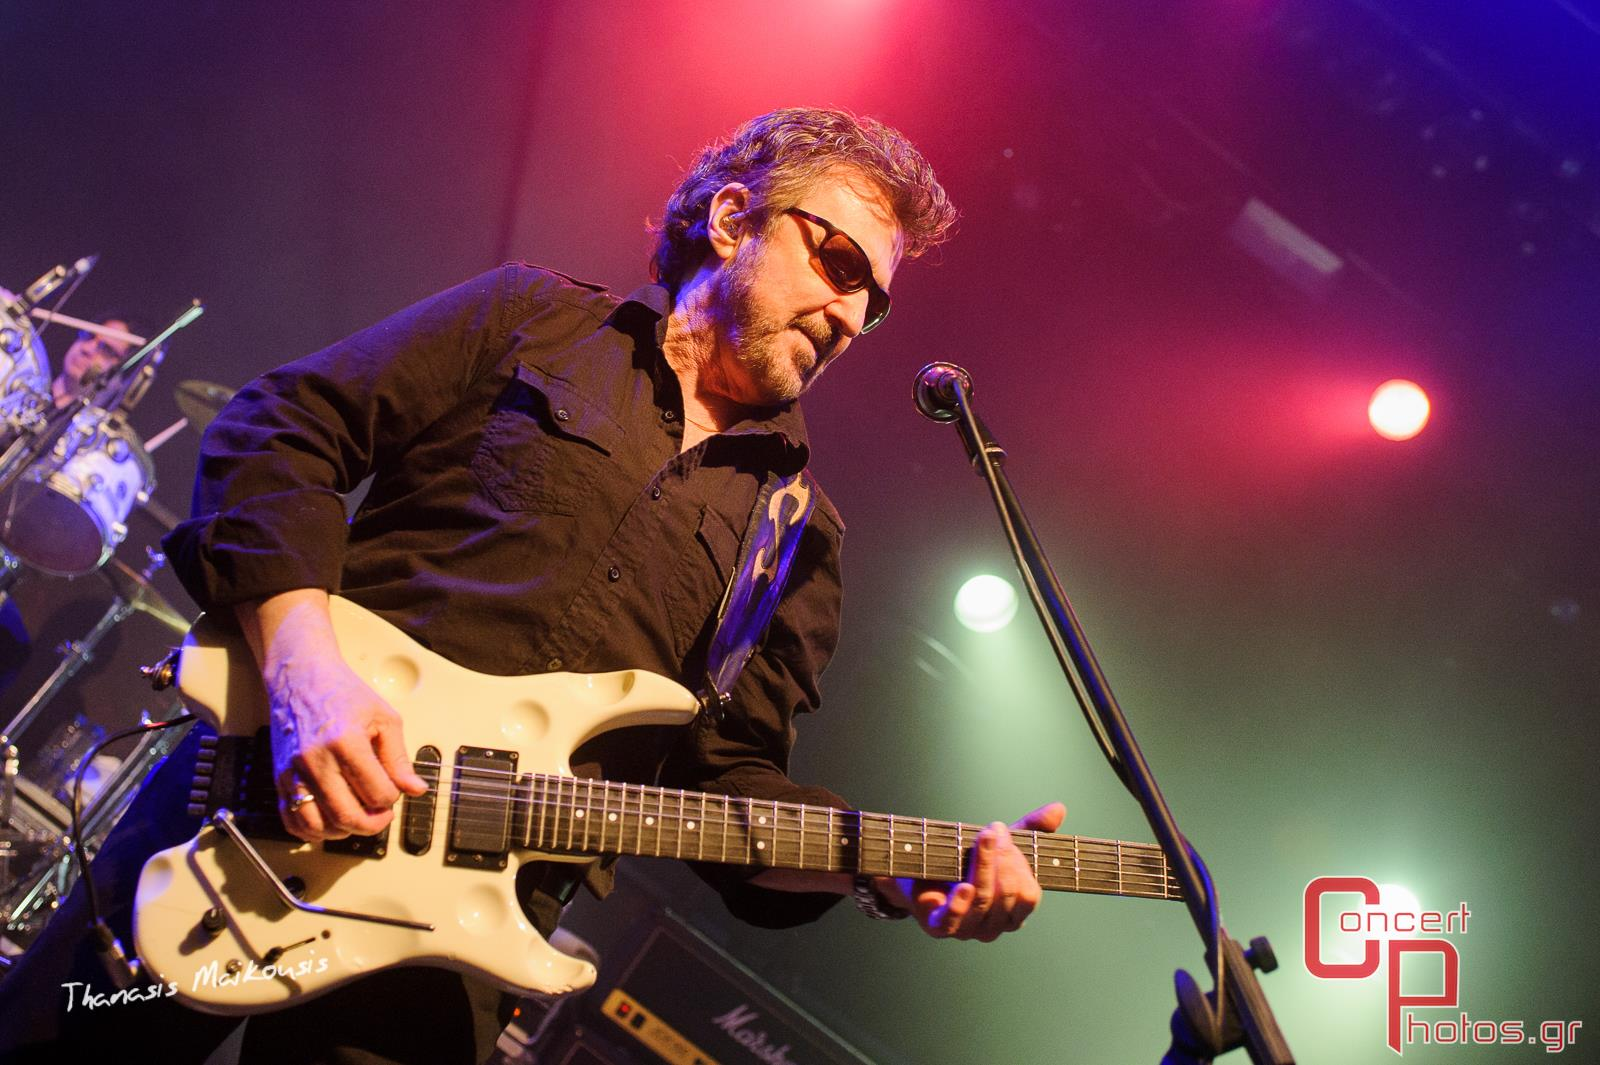 Blue Oyster Cult & Big Nose Attack-Blue Oyster Cult - Big Nose Attack photographer:  - ConcertPhotos-3095